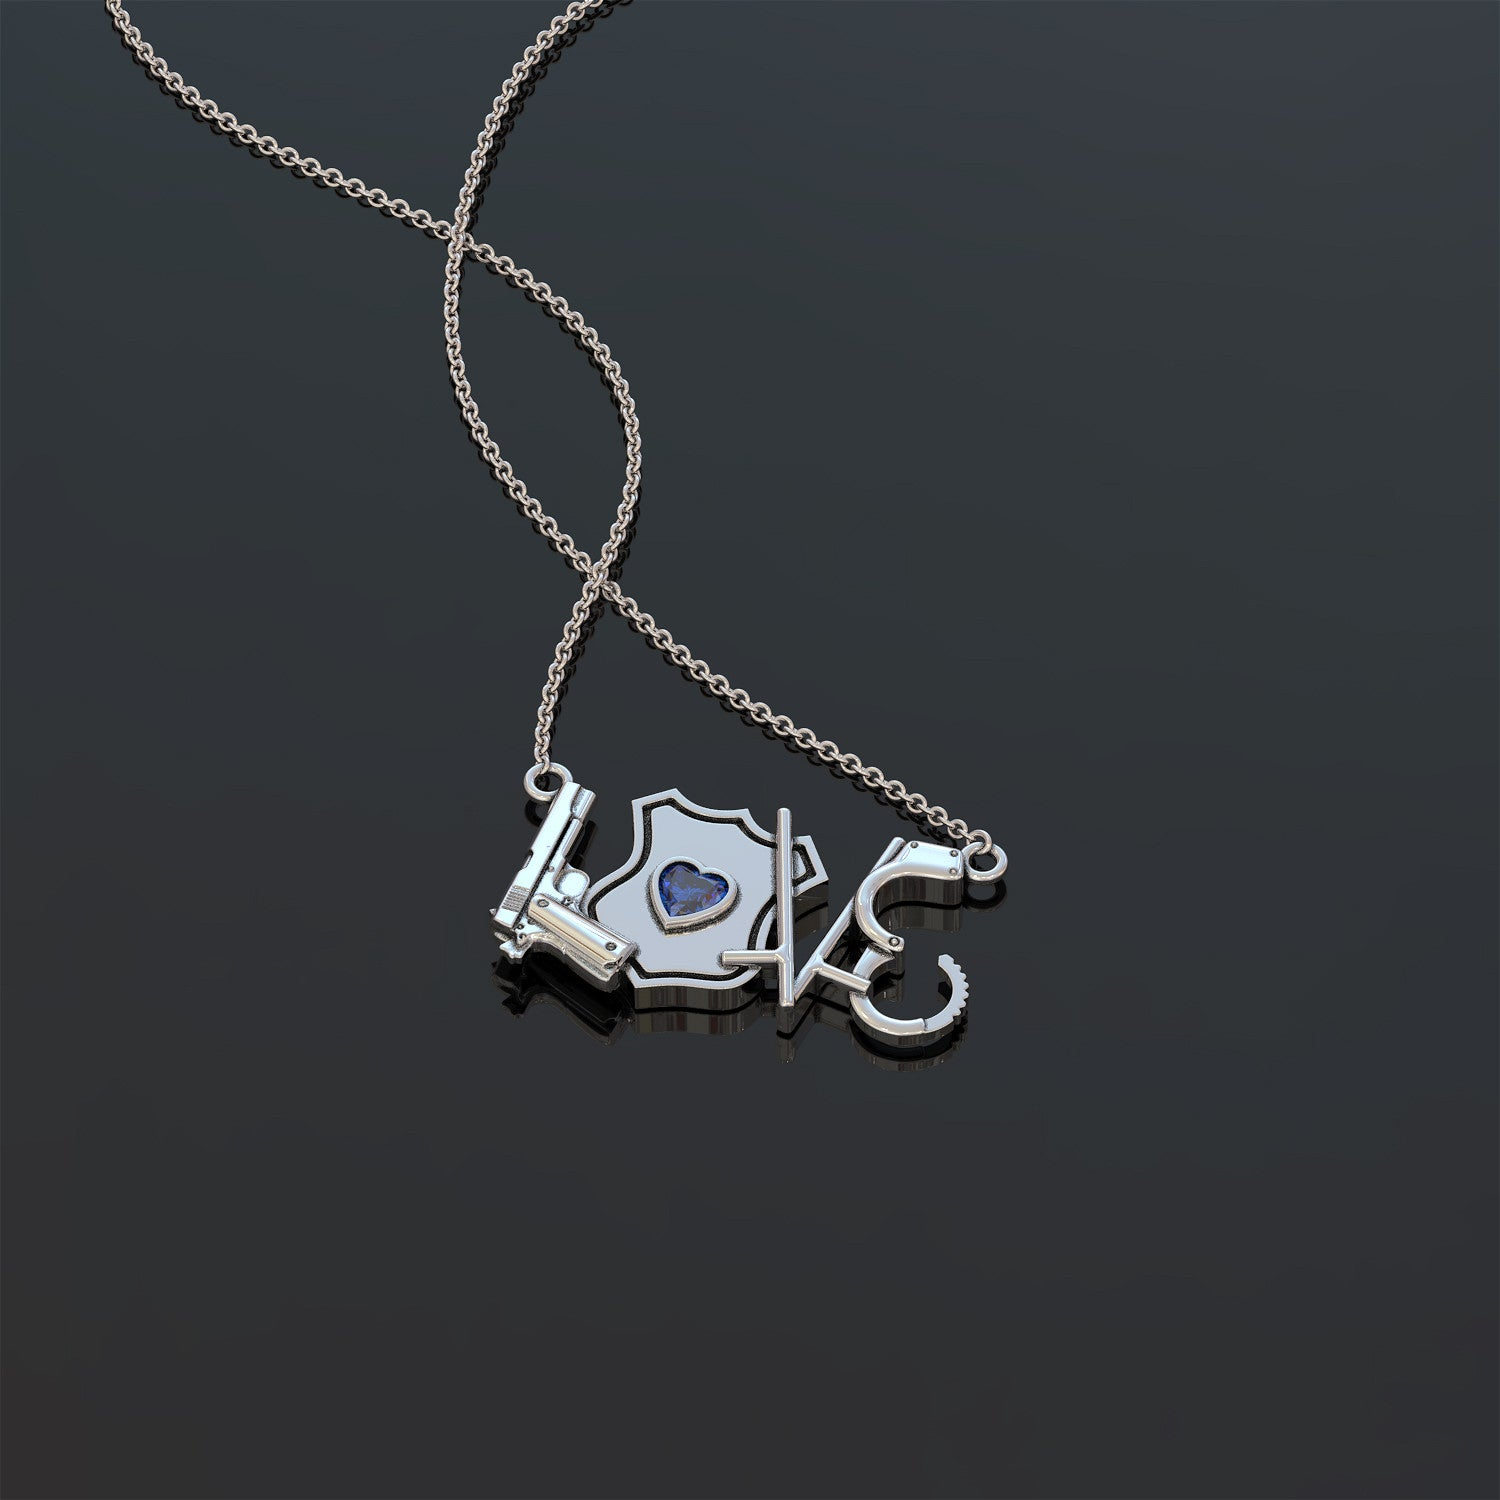 Police Love Necklace